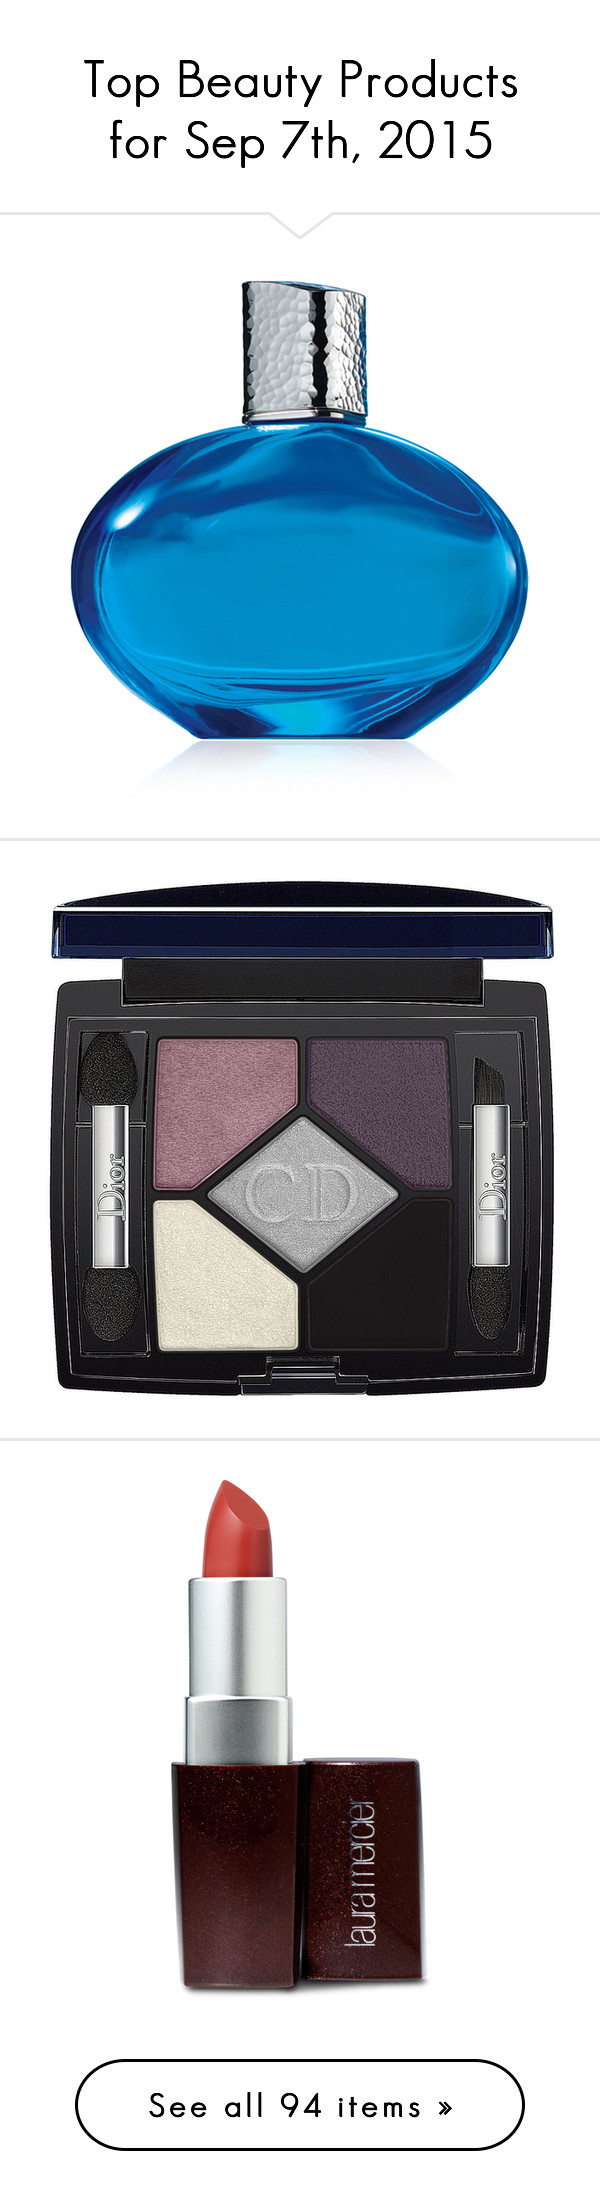 """""""Top Beauty Products for Sep 7th, 2015"""" by polyvore ❤ liked on Polyvore featuring beauty products, fragrance, perfume, beauty, makeup, blue, filler, elizabeth arden fragrance, eau de parfum perfume and eau de perfume"""